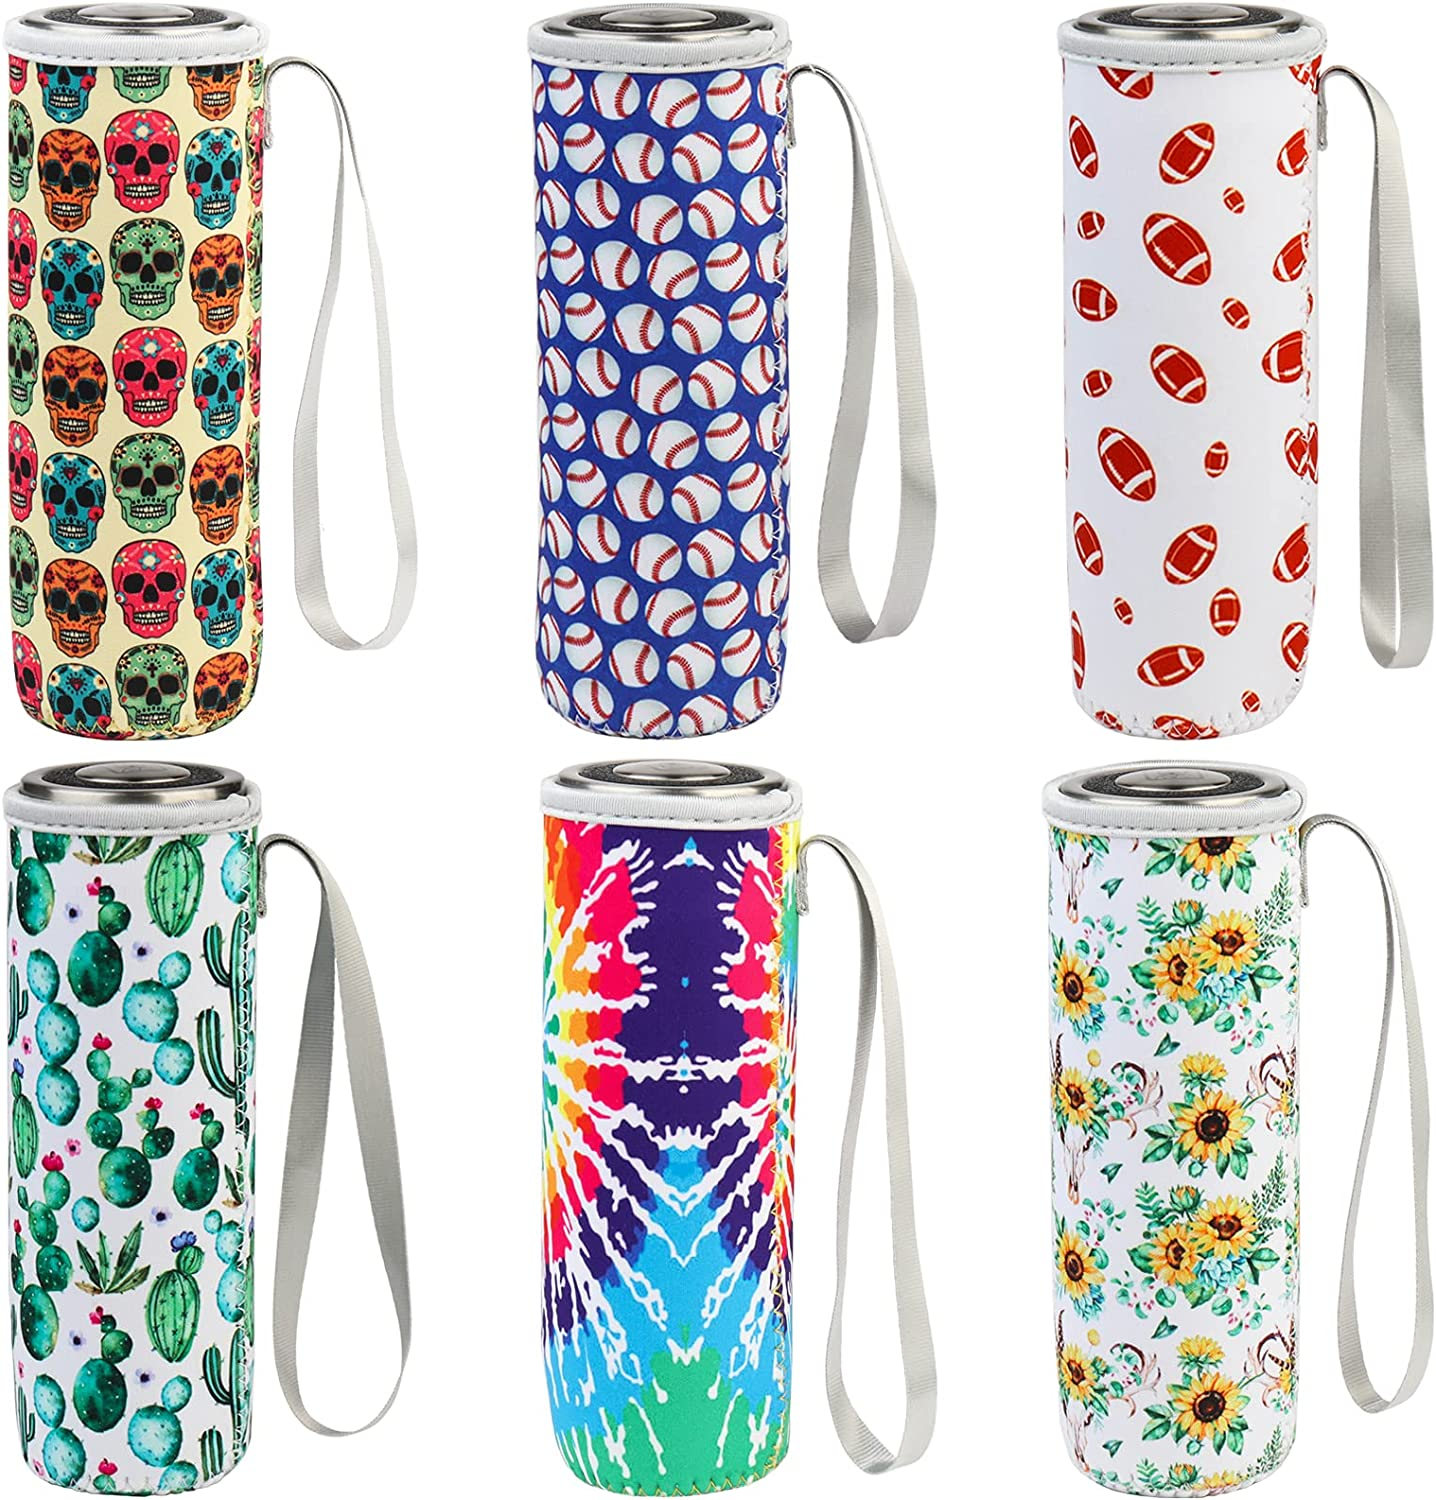 HaiMay 6 Pieces Reusable Bottle Sleeve Insulated Water Bottle Cooler Cover Glass Drink Bottle Holder fit 12 - 18 oz Glass and Plastic Bottle, Fresh Style